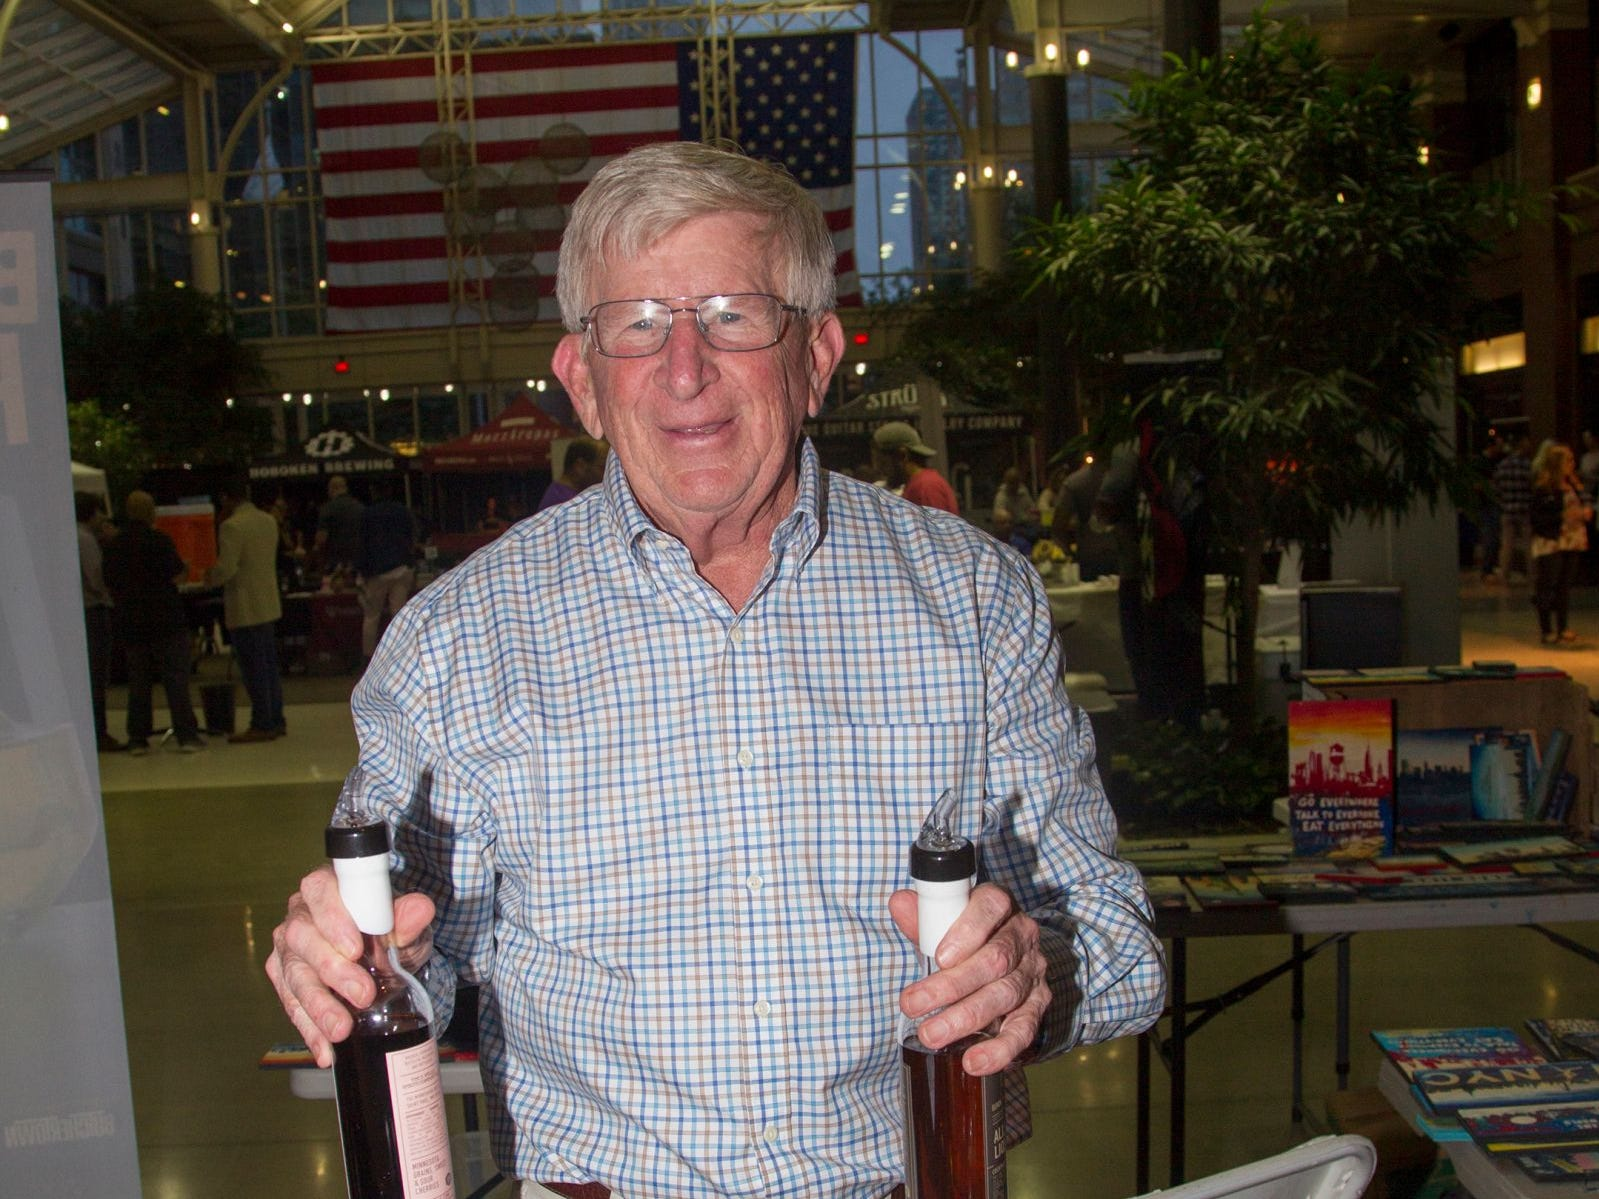 11-Wells  distillery - Bob. Jersey City Craft Distillery Fest at the Harborside Atrium featured more than 100 styles of spirits. Guests had the chance to taste craft-distilled spirits from moonshine, rum, cognac, whiskey, vodka, gin, tequila and more. 09/08/2018